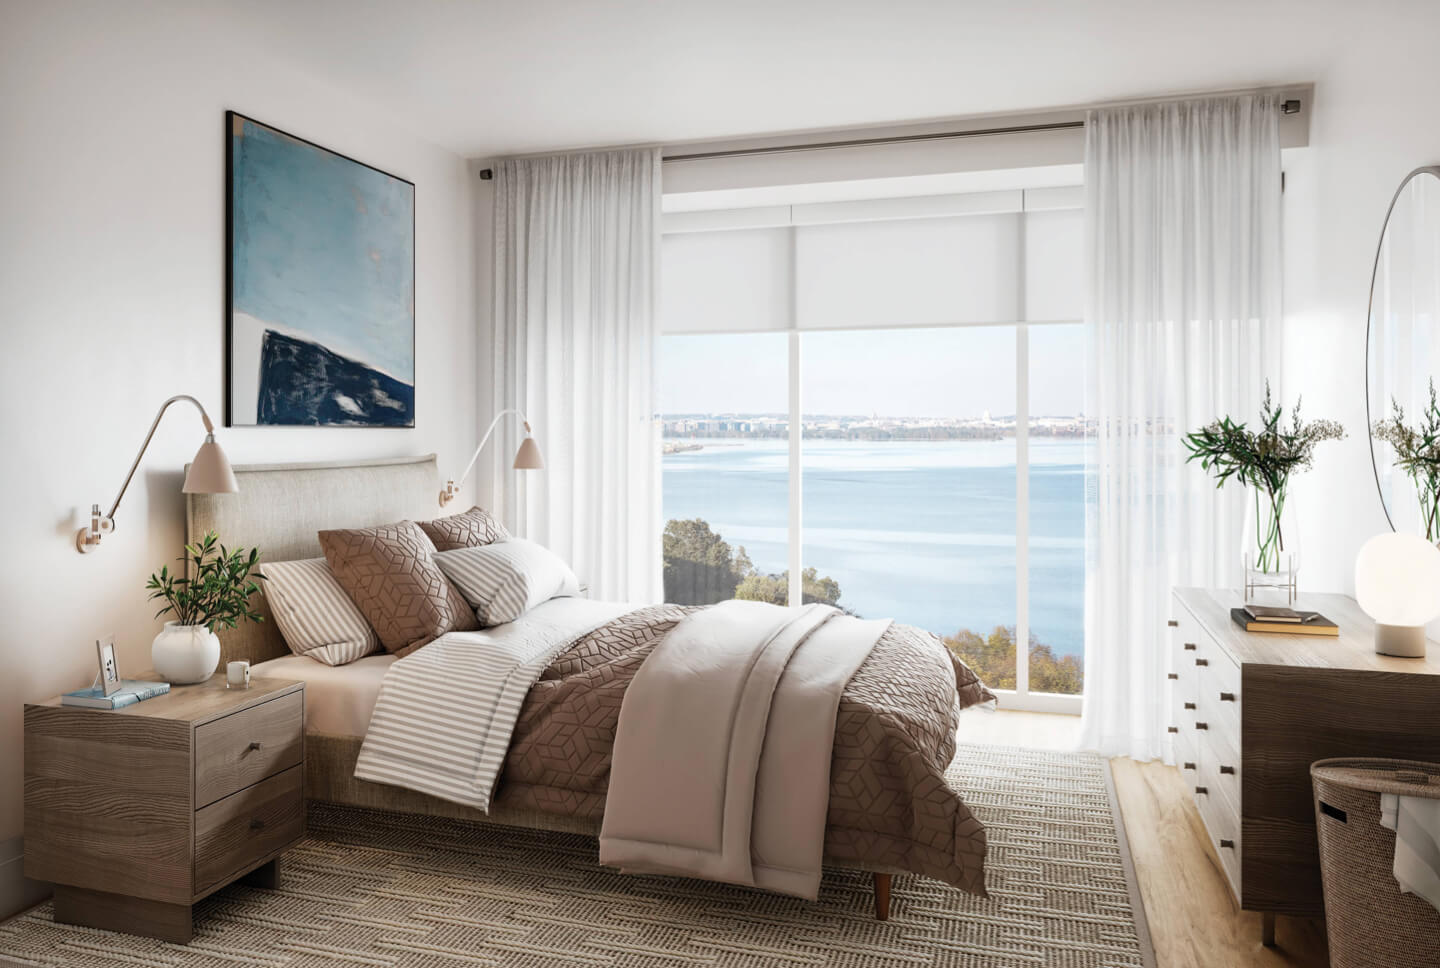 Condo residence bedroom with bed in front of large window overlooking waterfront